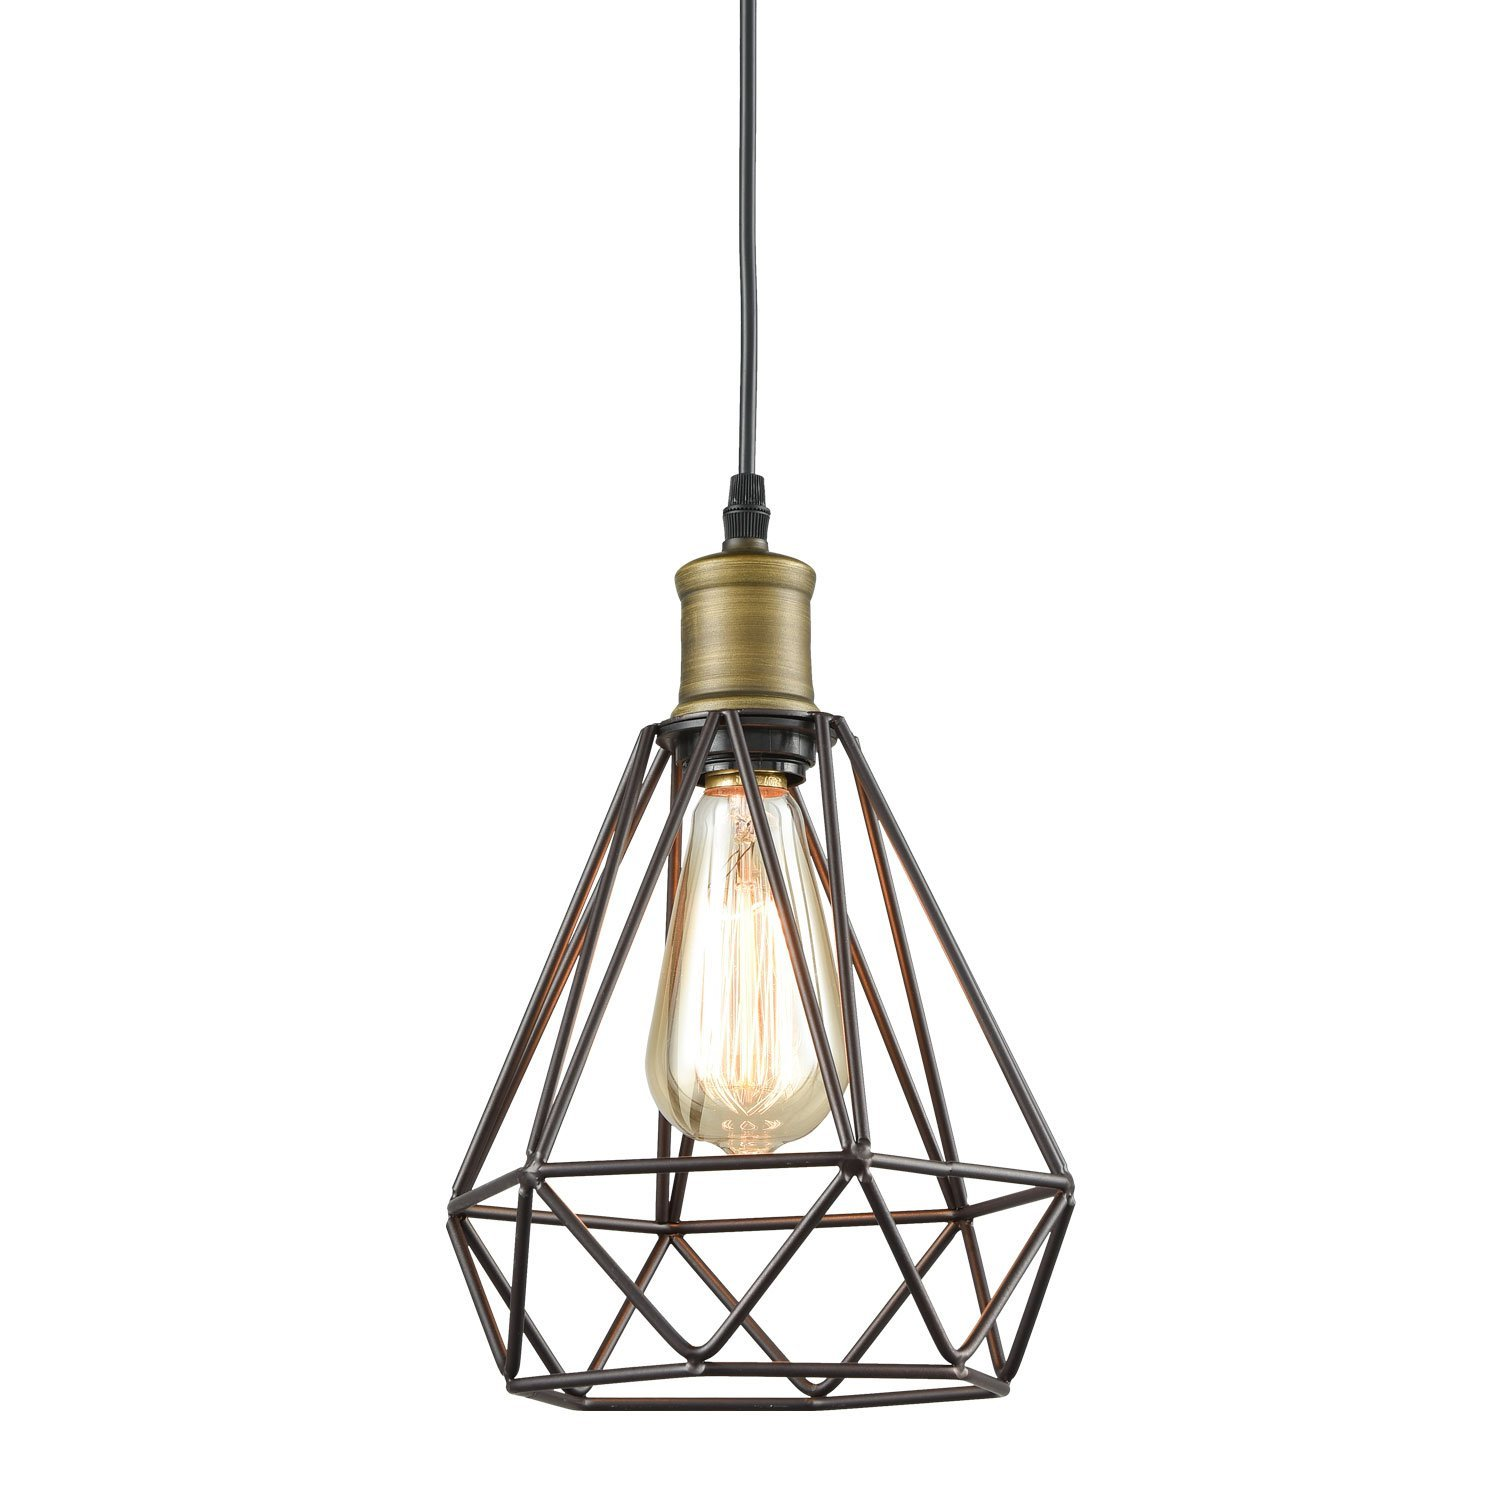 Hanging Lamp Design: Farmhouse Light Fixtures Under $200 {on Amazon